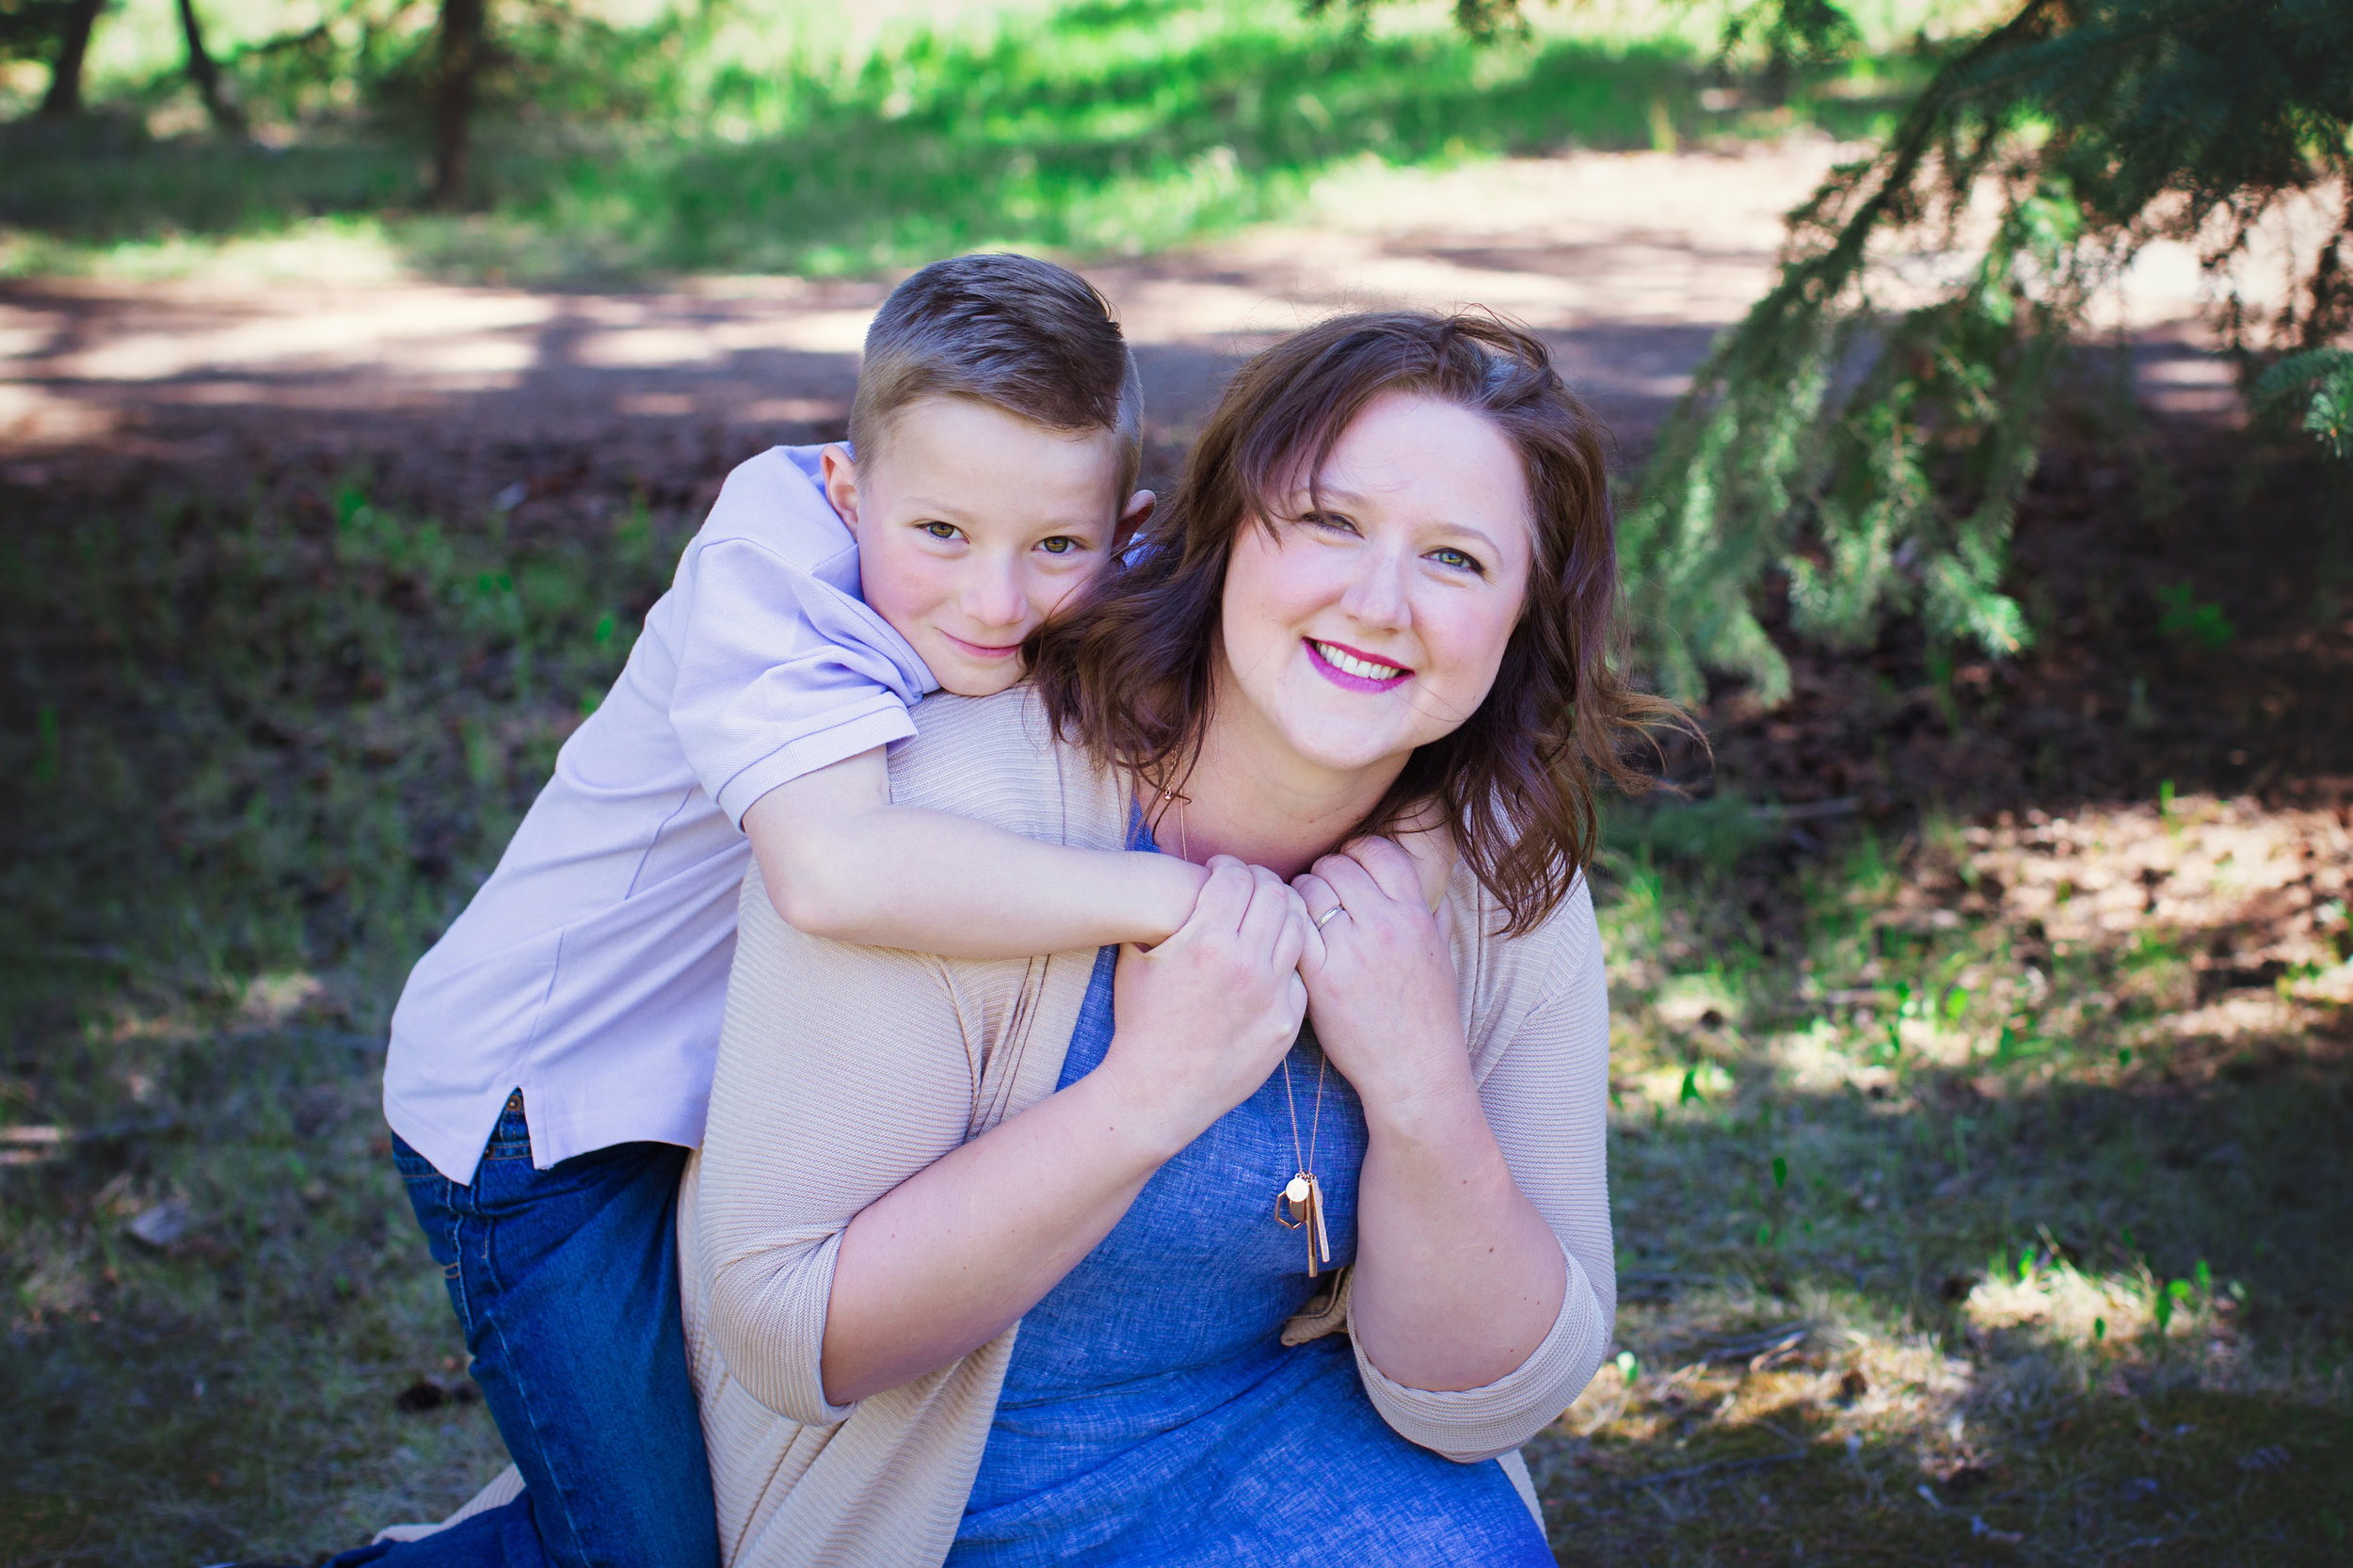 Mom and her son at the Park. Calgary Family Photographer. Milashka Photography